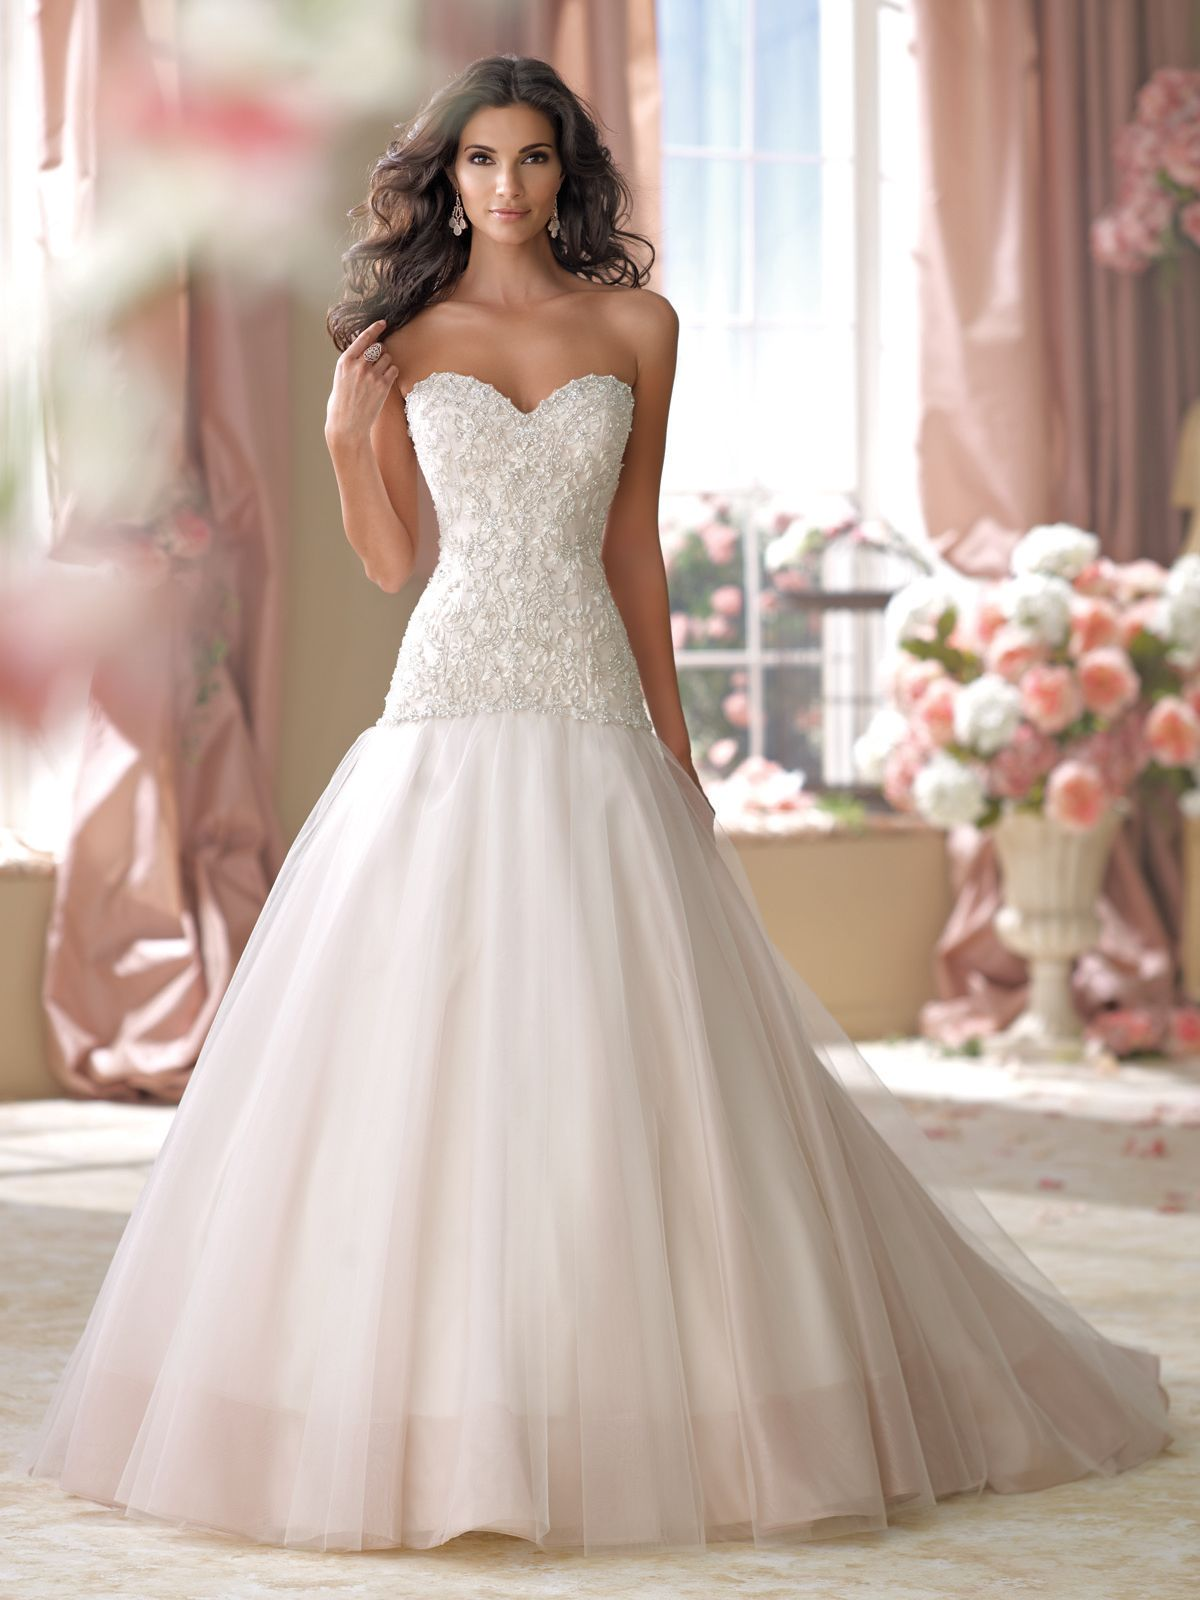 Organza & Tulle Sweetheart Neckline A-Line Wedding Dress- 114270 ...